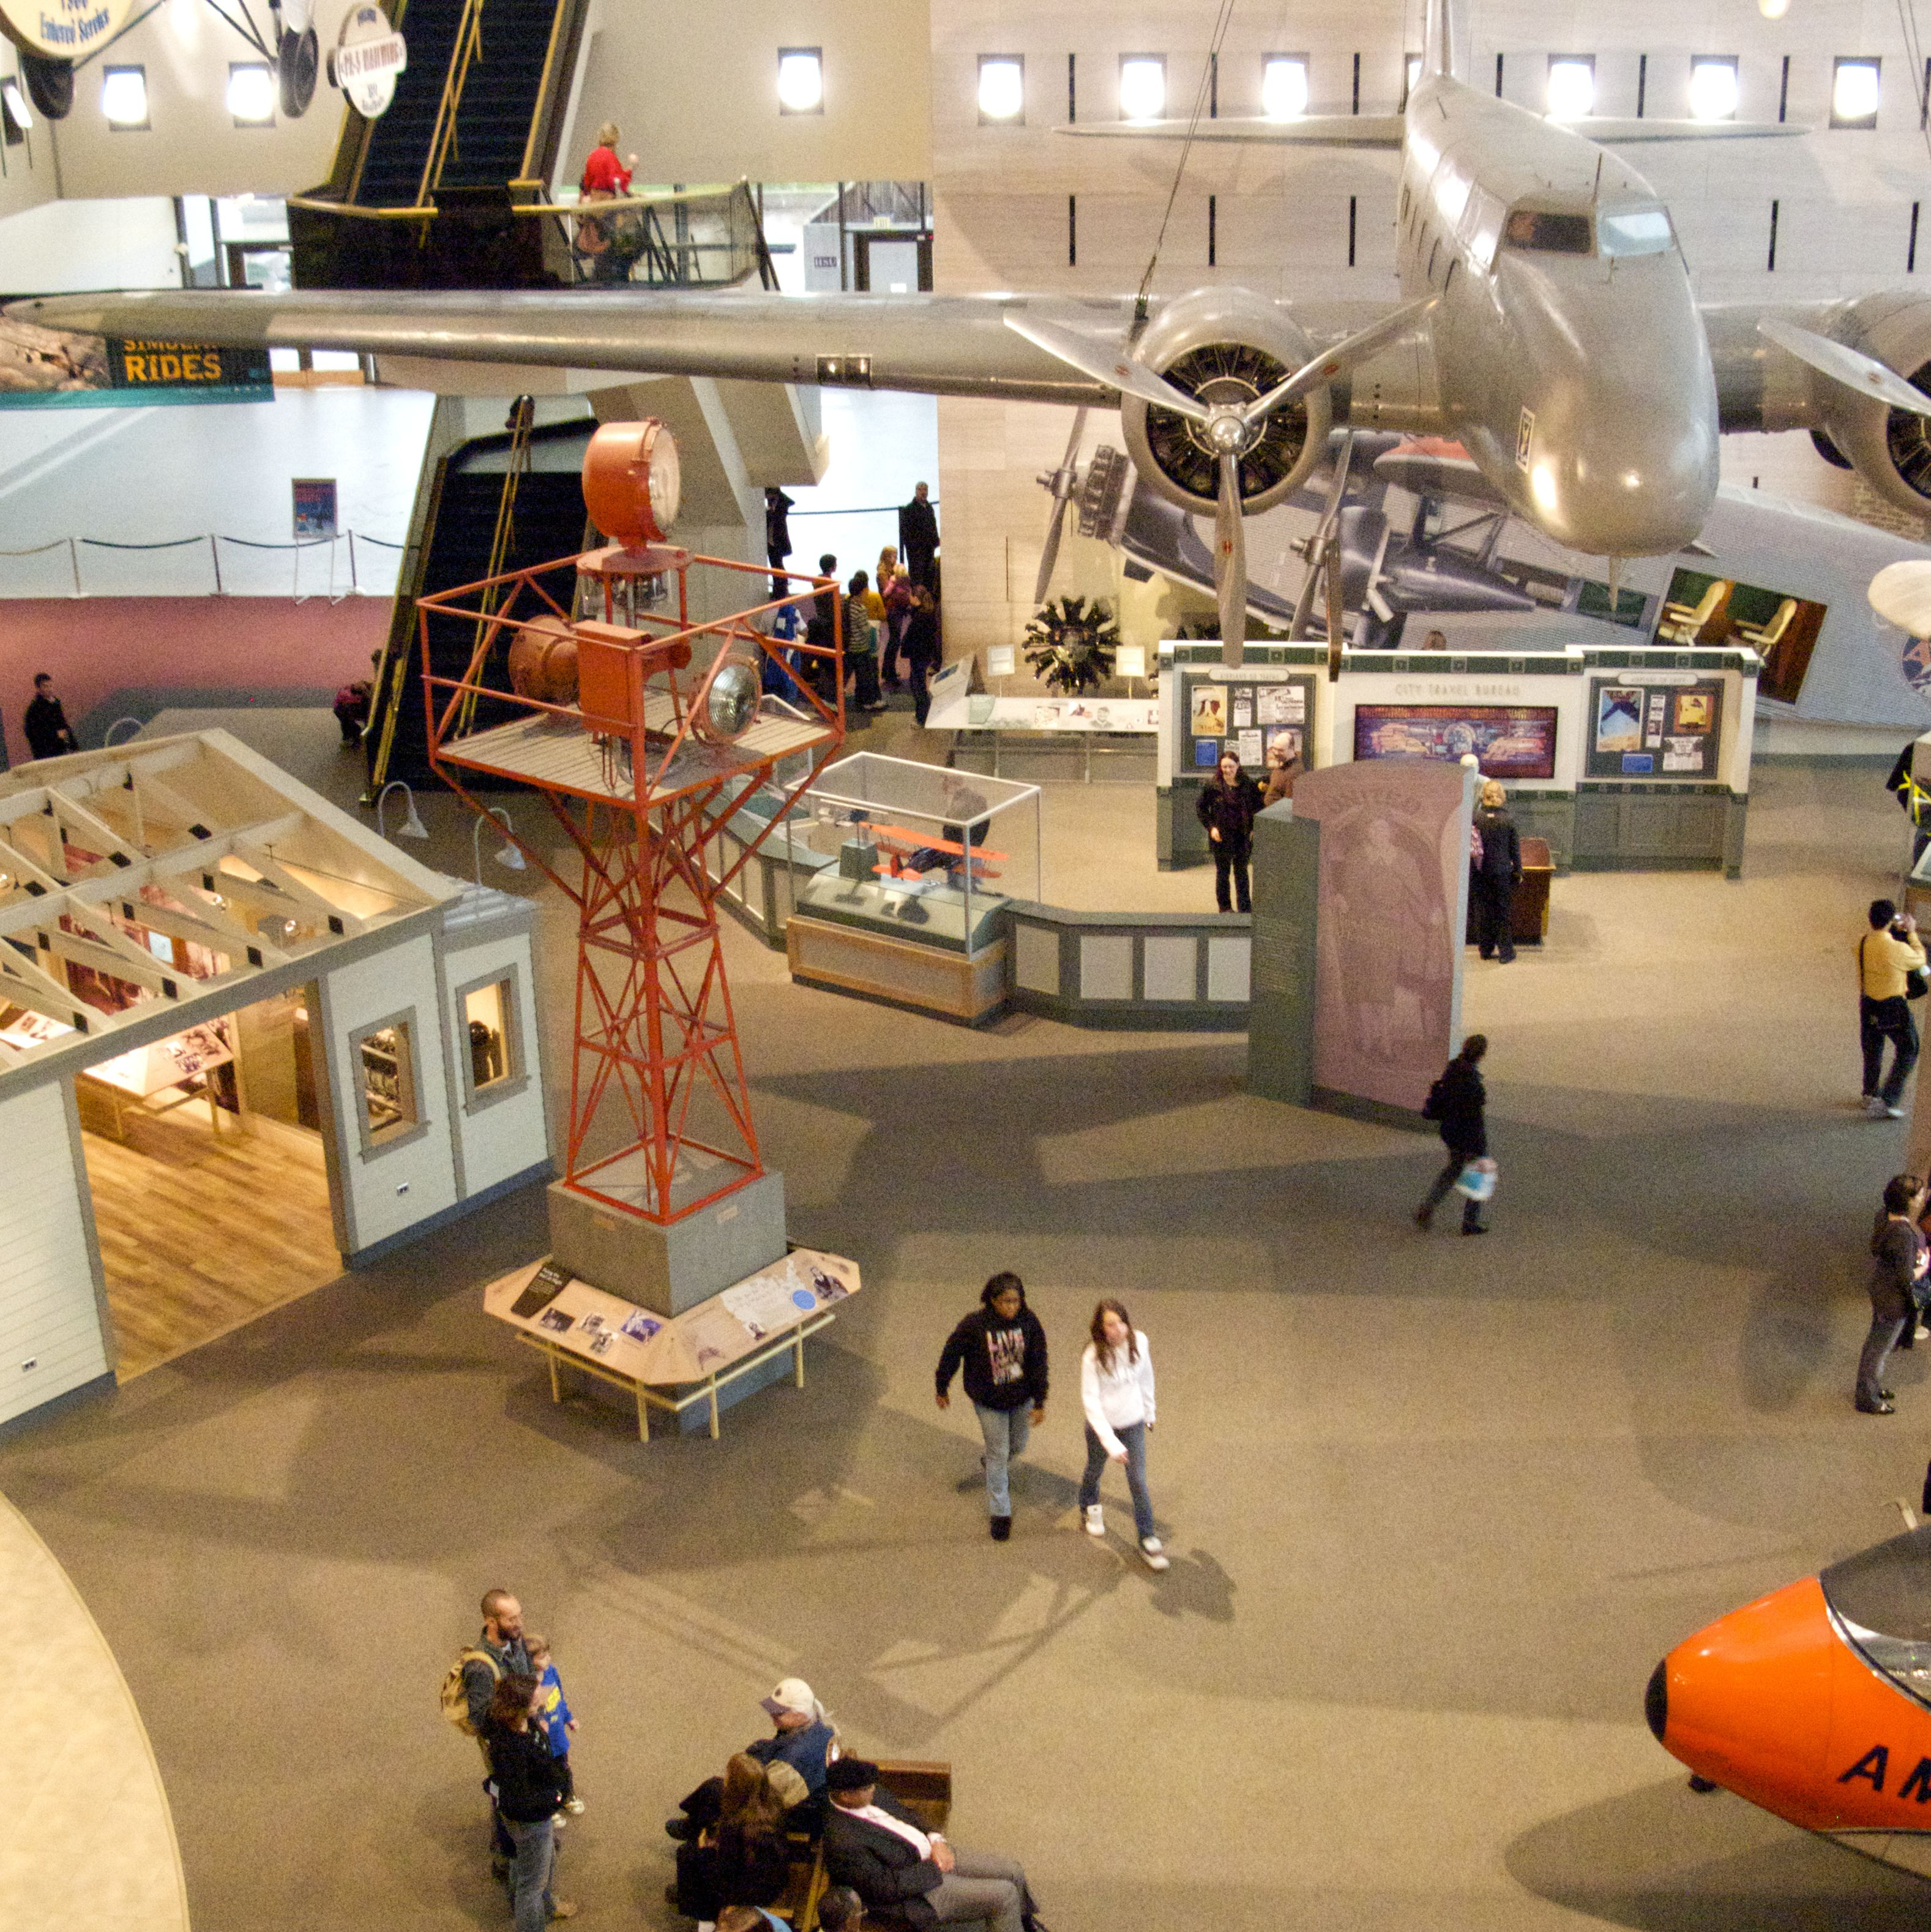 Art Places In Washington Dc: 10 Science And Technology Museums In Washington DC